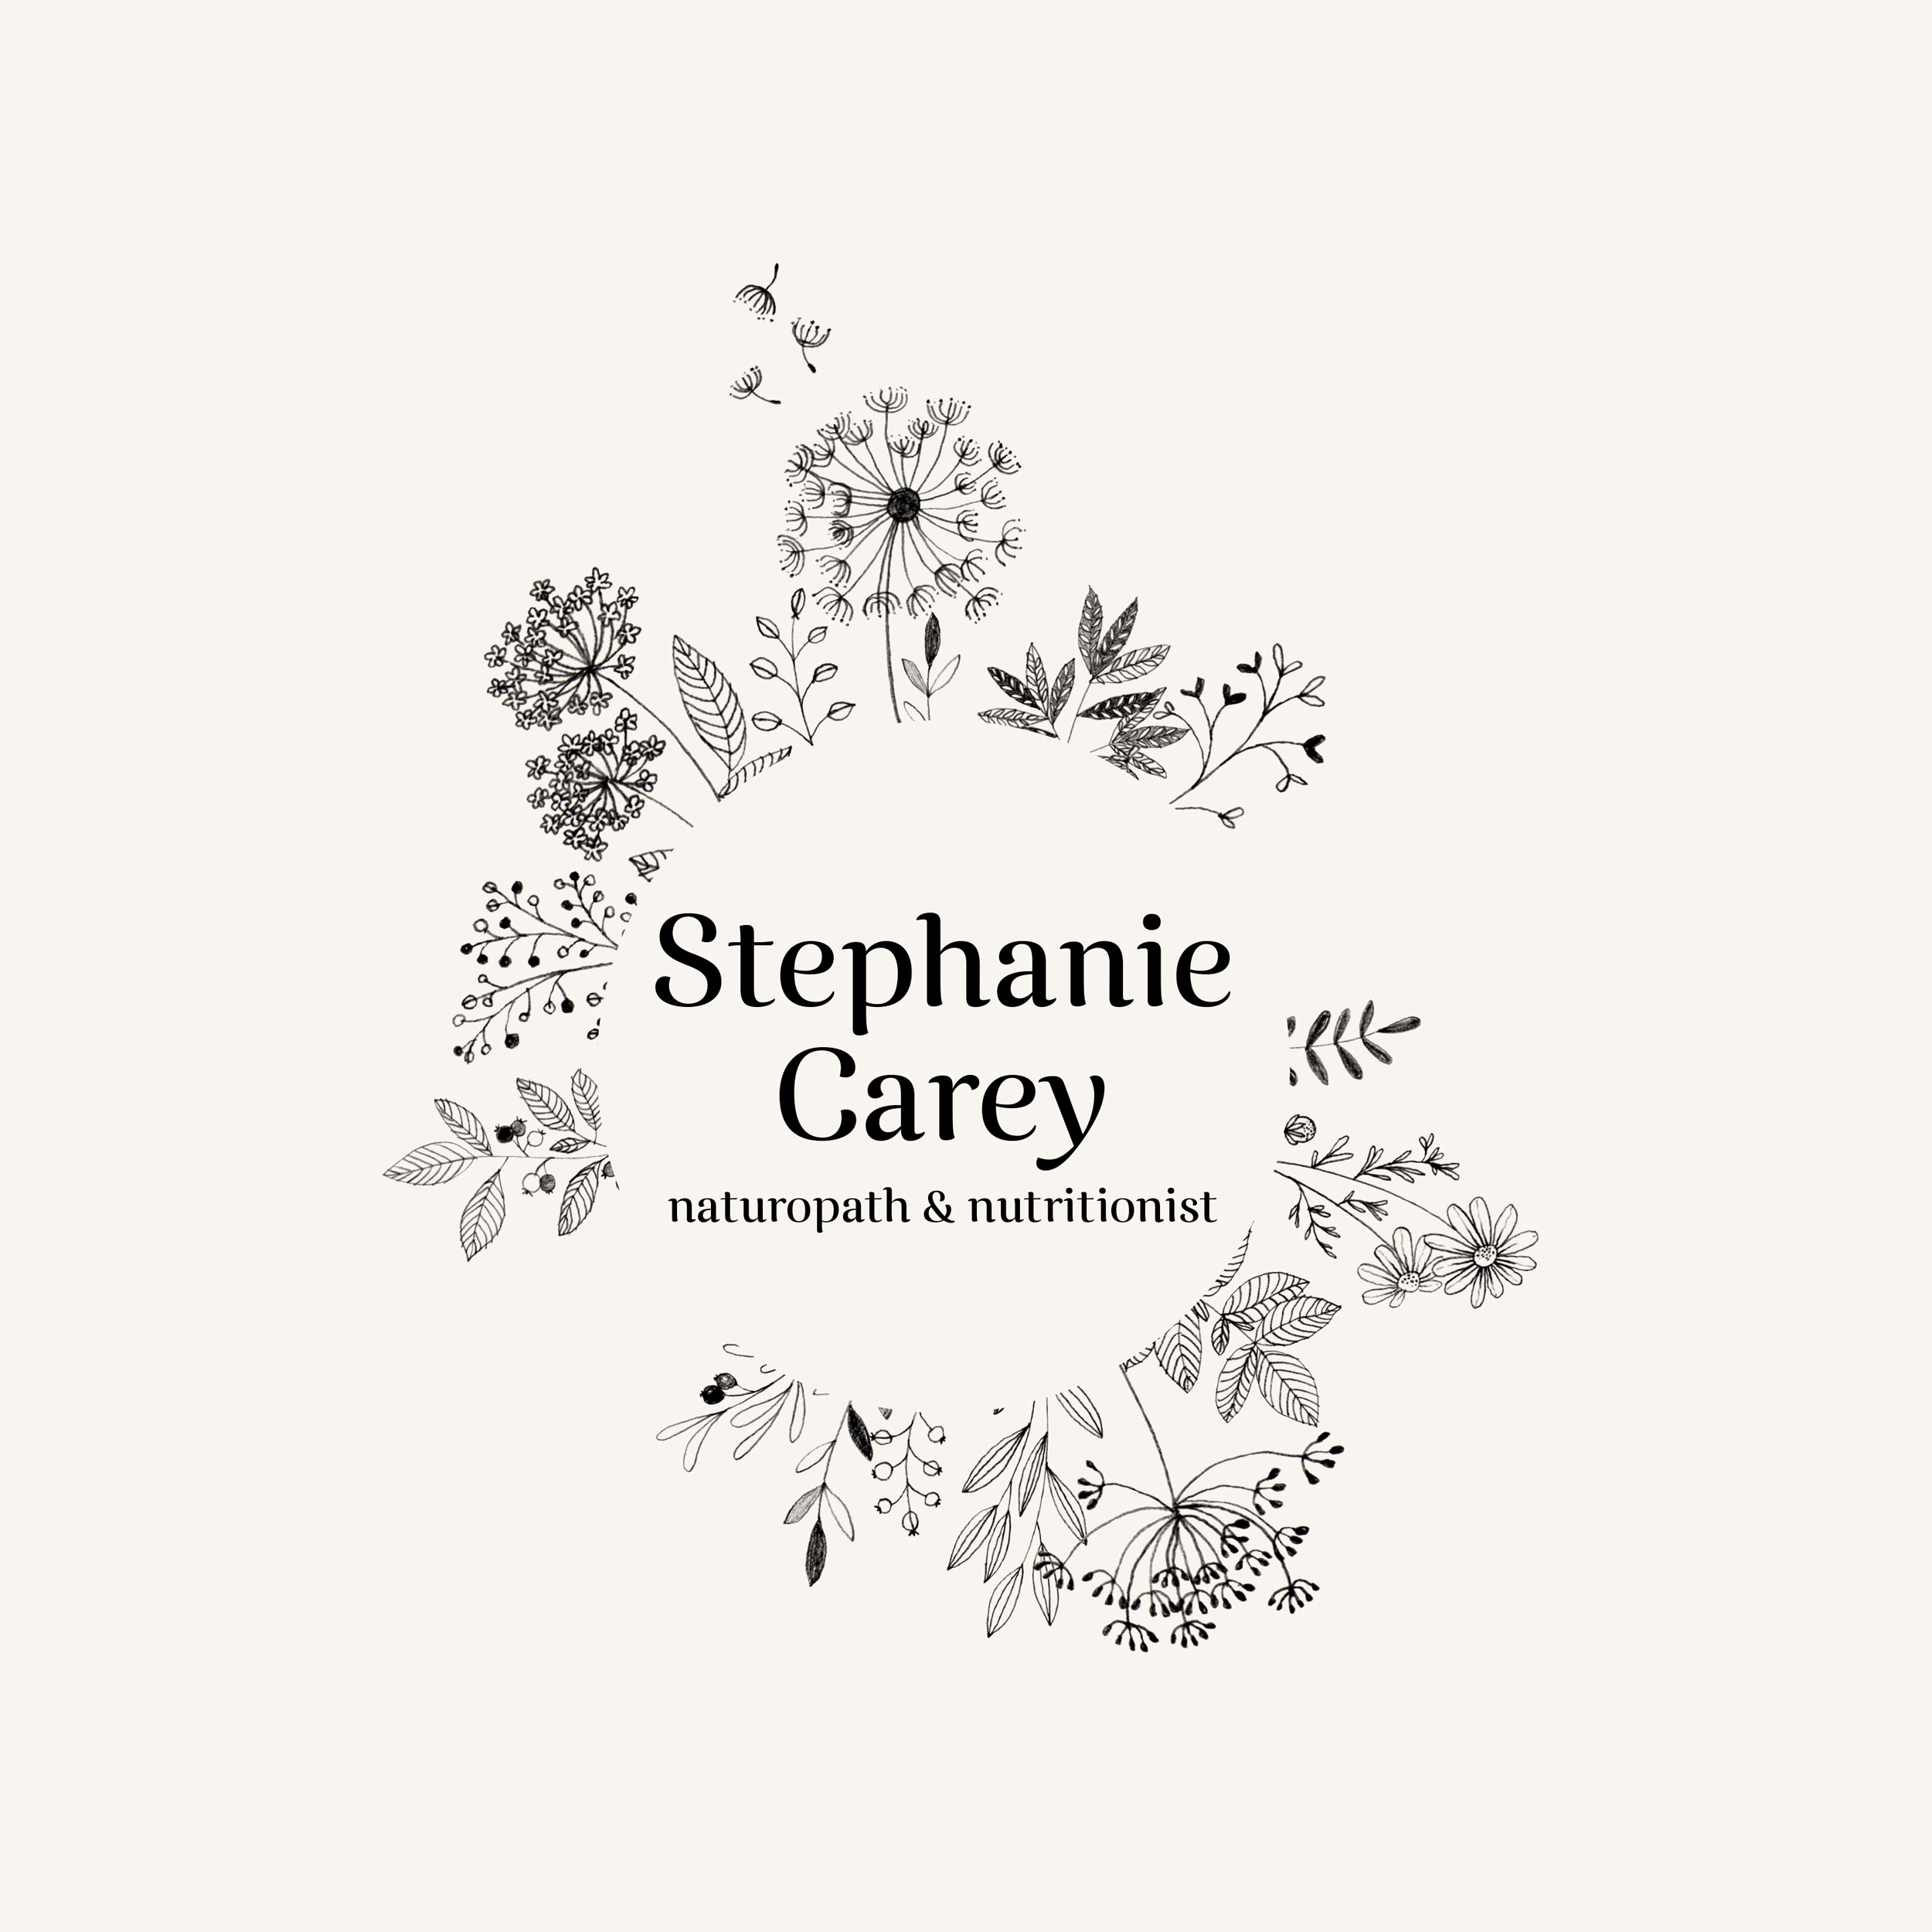 Stephanie-Carey-logo.jpg